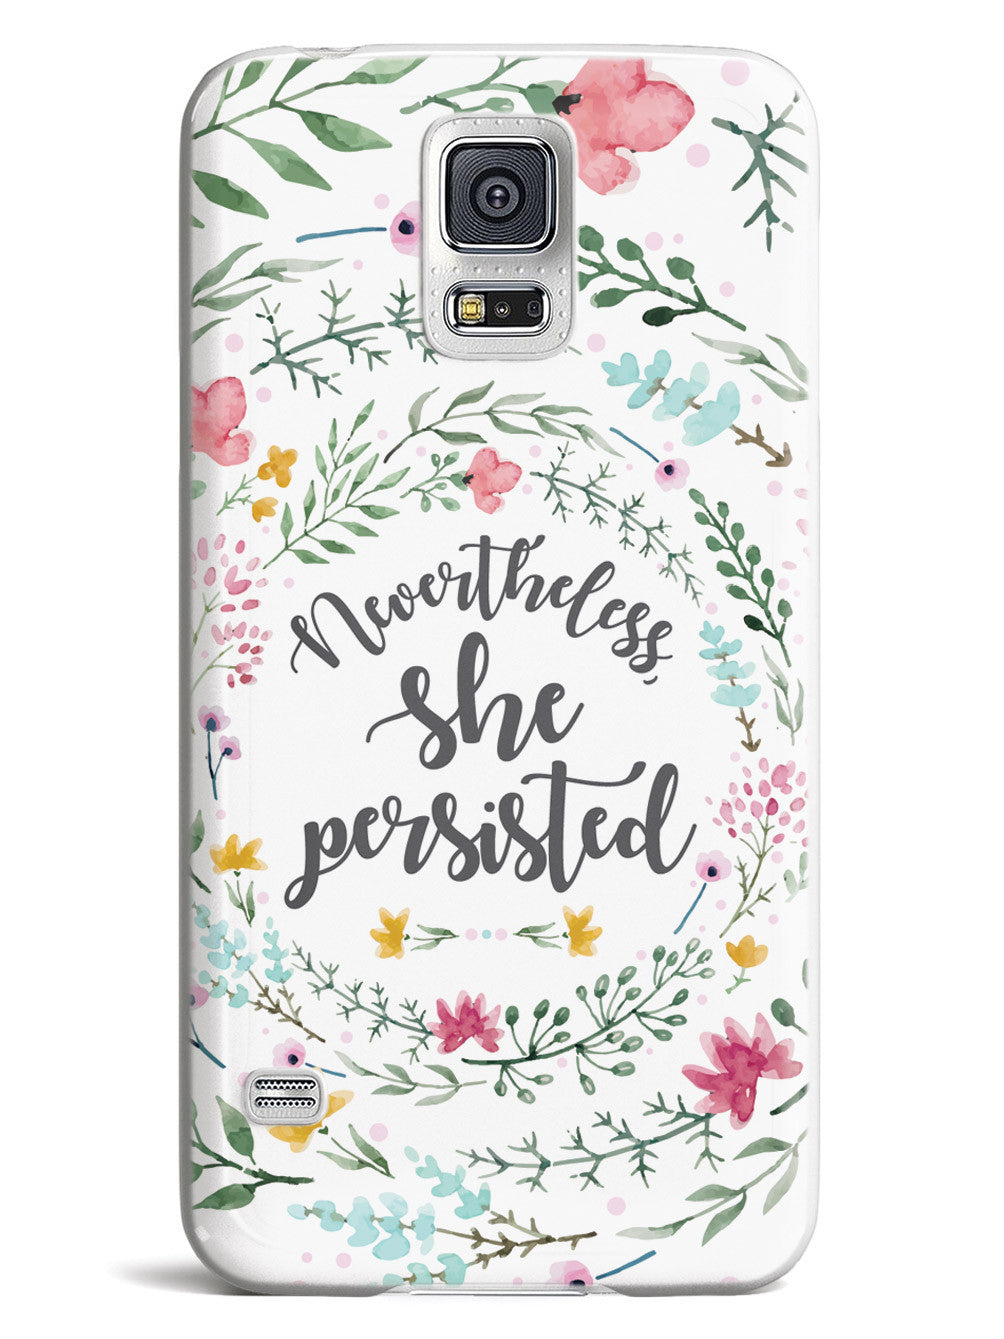 Nevertheless, She Persisted - Watercolor Flower Wreath - White Case